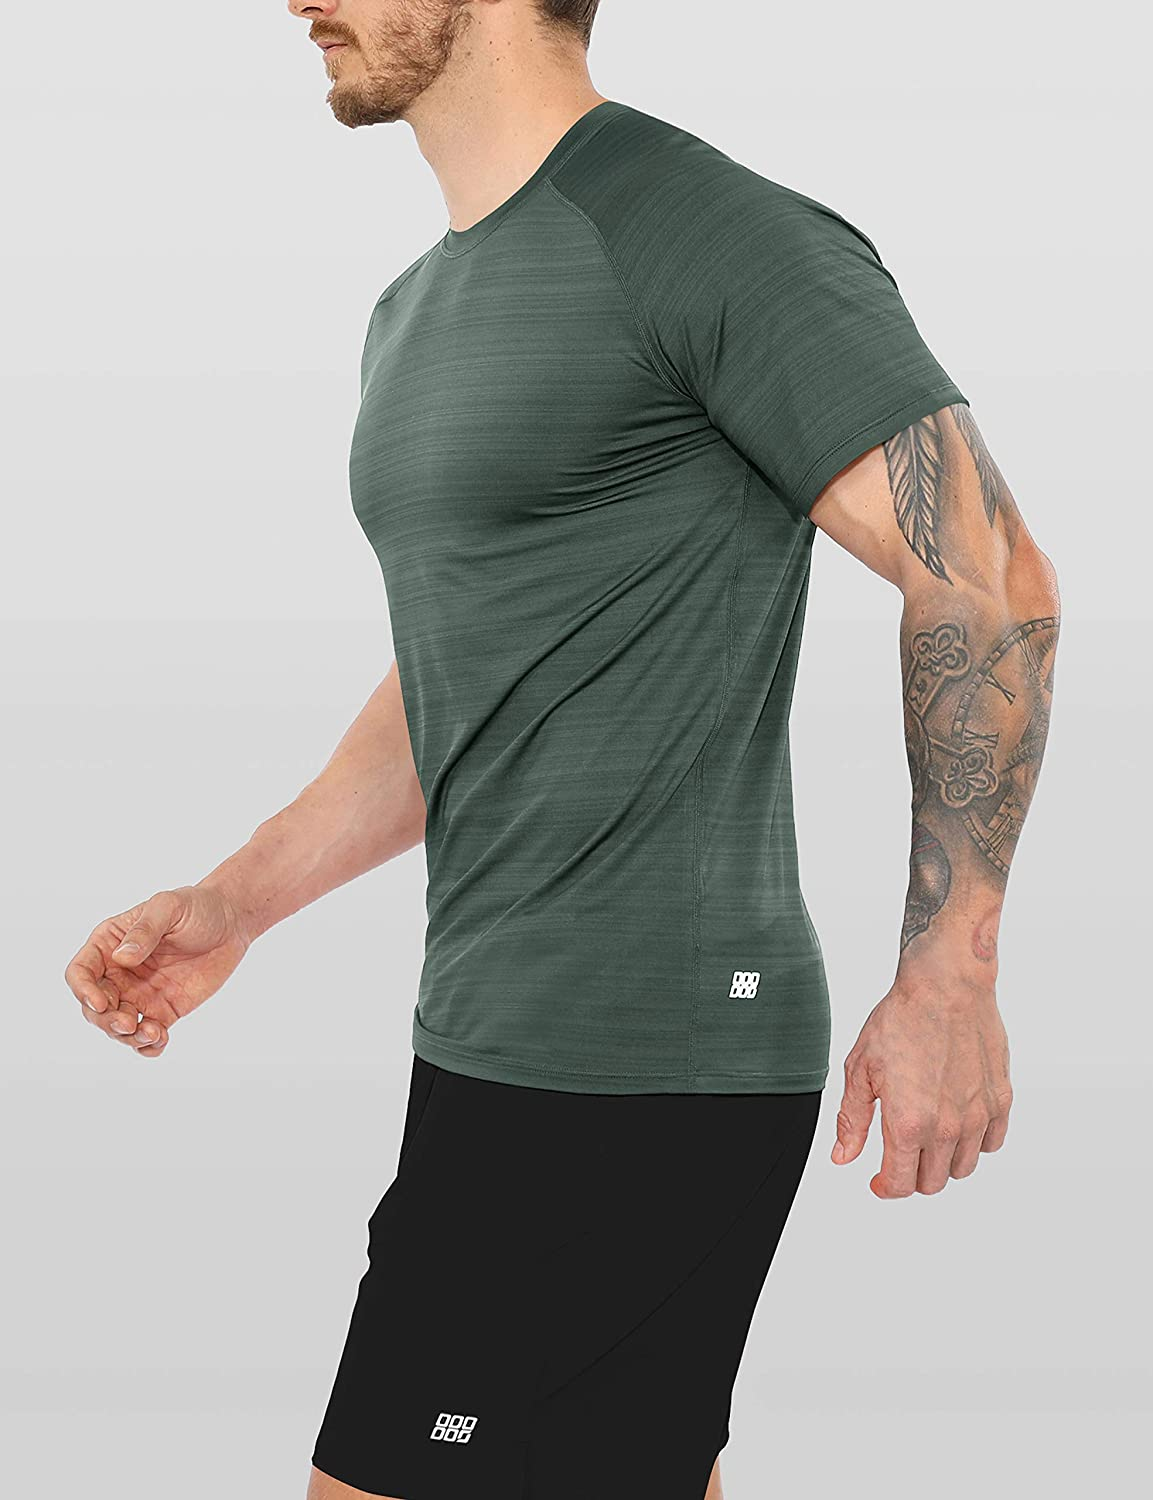 ODODOS Men's Fitted Athletic T-Shirt Breathable Short Sleeve Raglan Running Workout Studio Tee Shirts